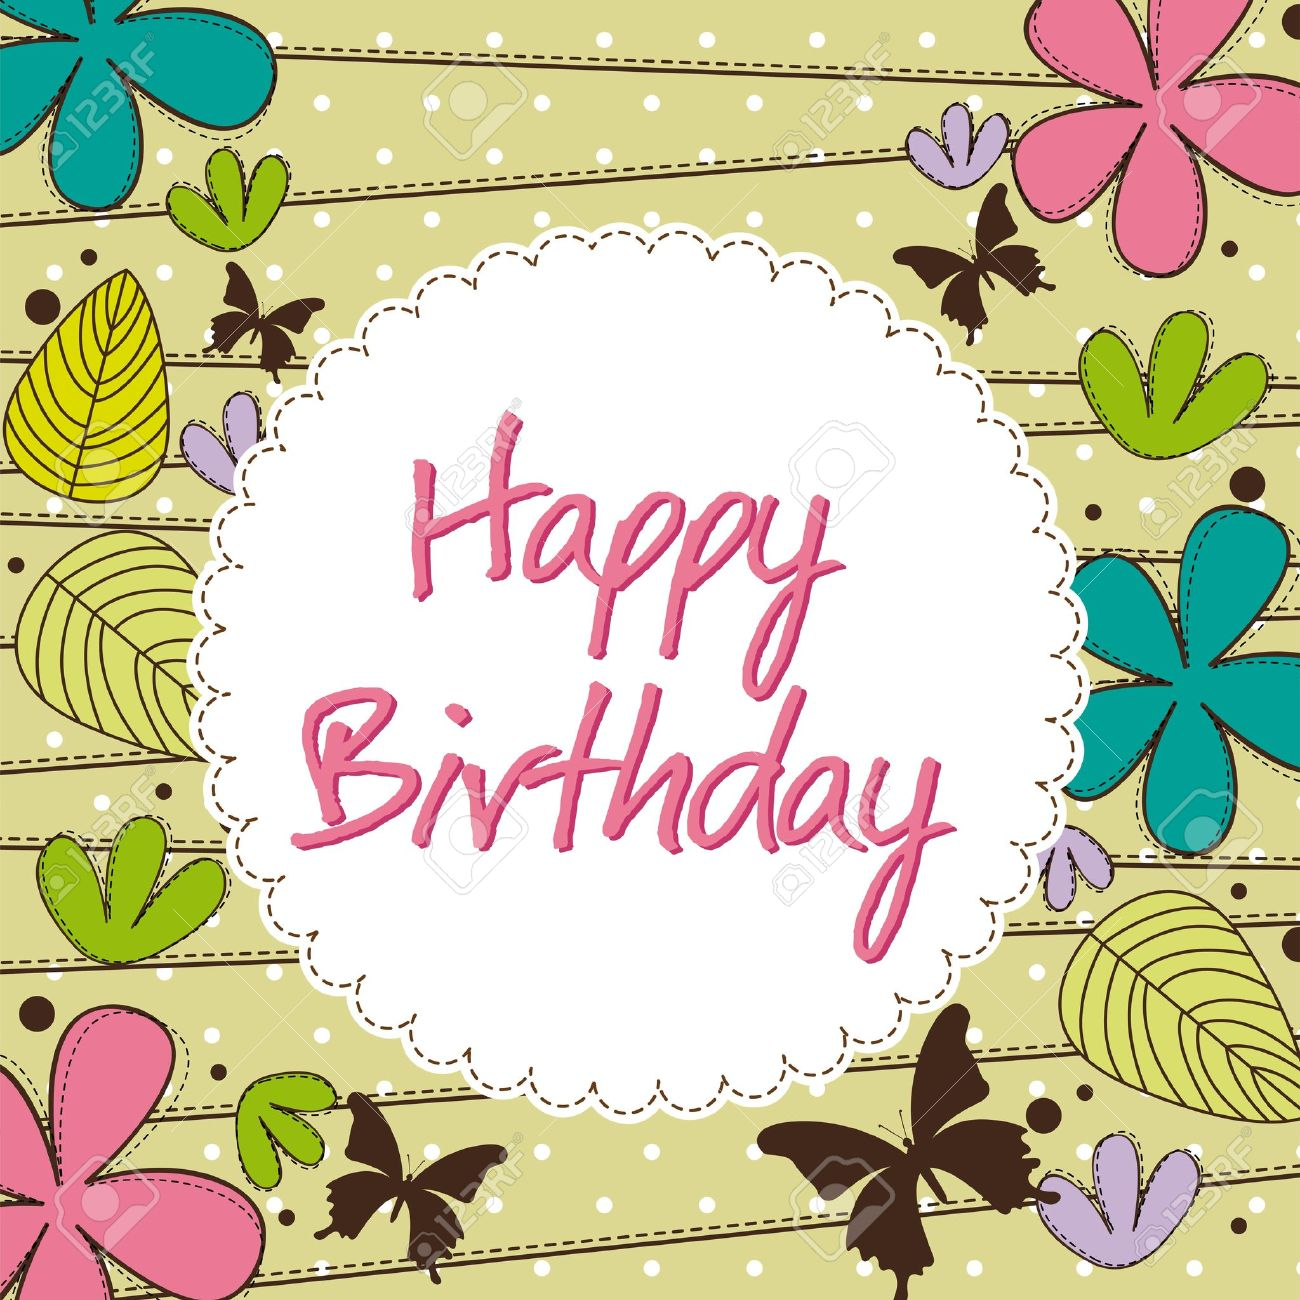 Cute Happy Birthday Card With Flower Royalty Free Cliparts Vectors And Stock Illustration Image 14038975